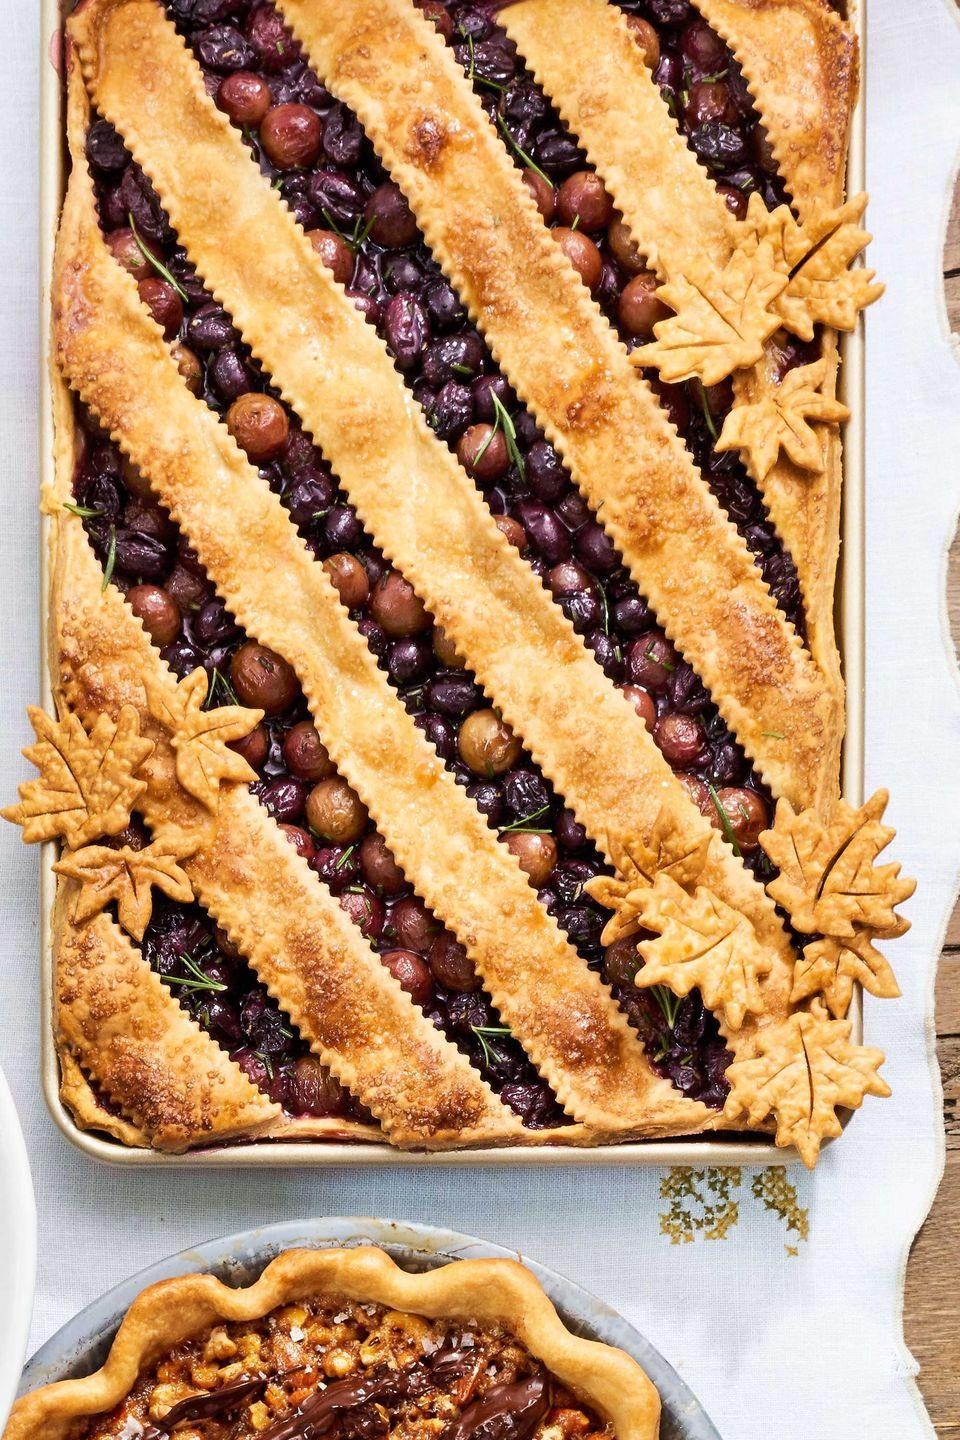 """<p>Feed a crowd with this rustic, sweet-and-savory pie.</p><p><strong><a href=""""https://www.countryliving.com/food-drinks/recipes/a40042/grape-slab-pie-recipe/"""" rel=""""nofollow noopener"""" target=""""_blank"""" data-ylk=""""slk:Get the recipe"""" class=""""link rapid-noclick-resp"""">Get the recipe</a>.</strong> </p>"""